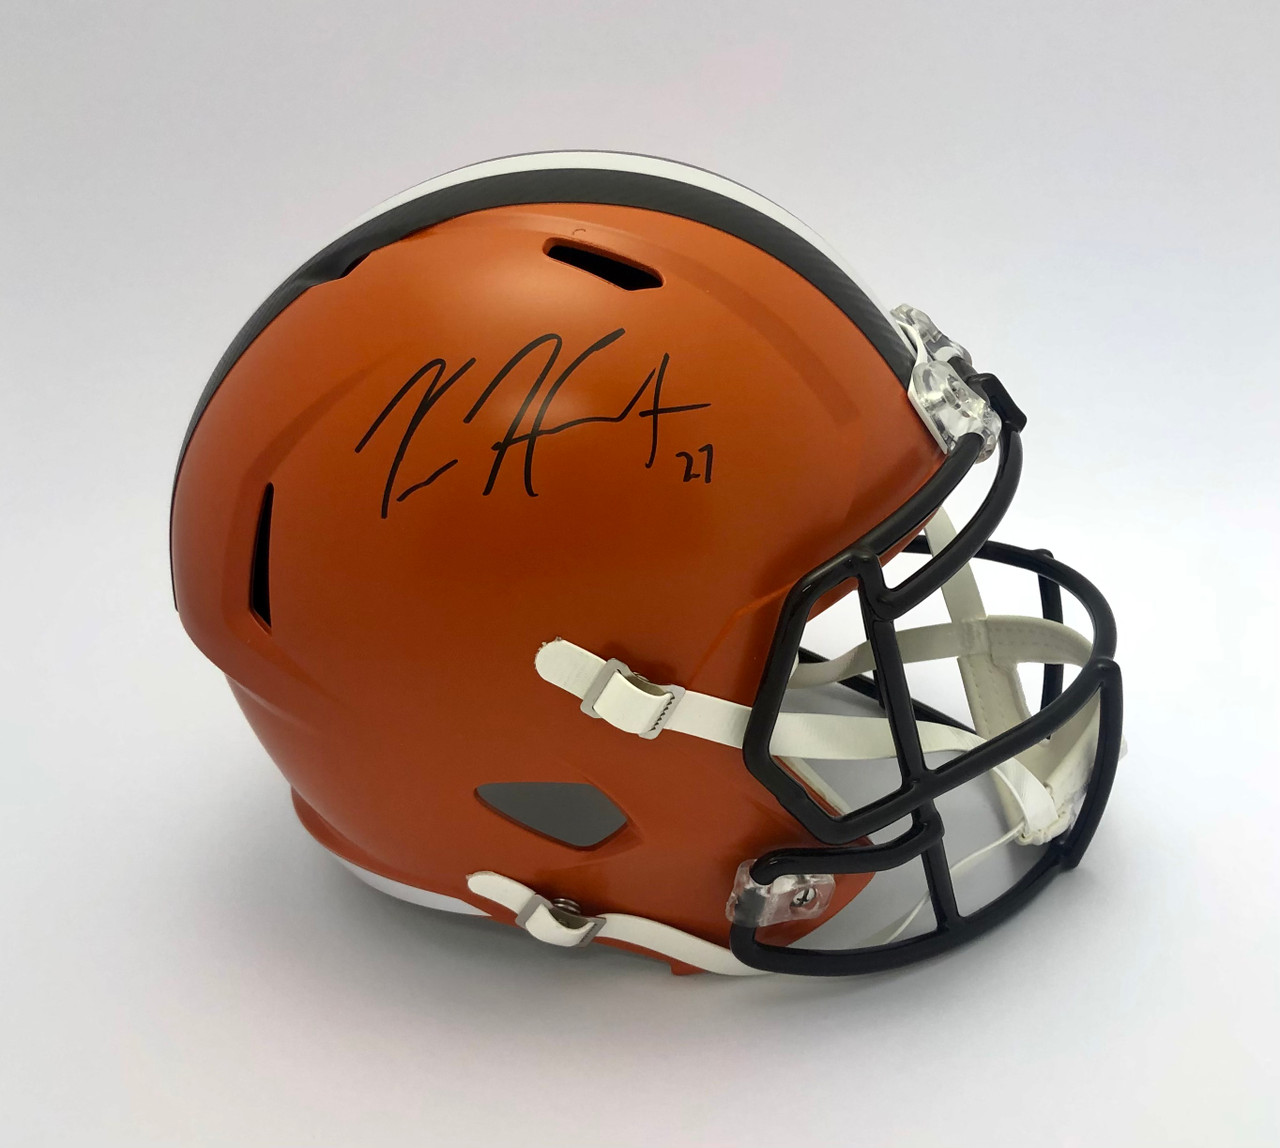 Kareem Hunt Cleveland Browns Autographed Replica Helmet - PSA Authentic